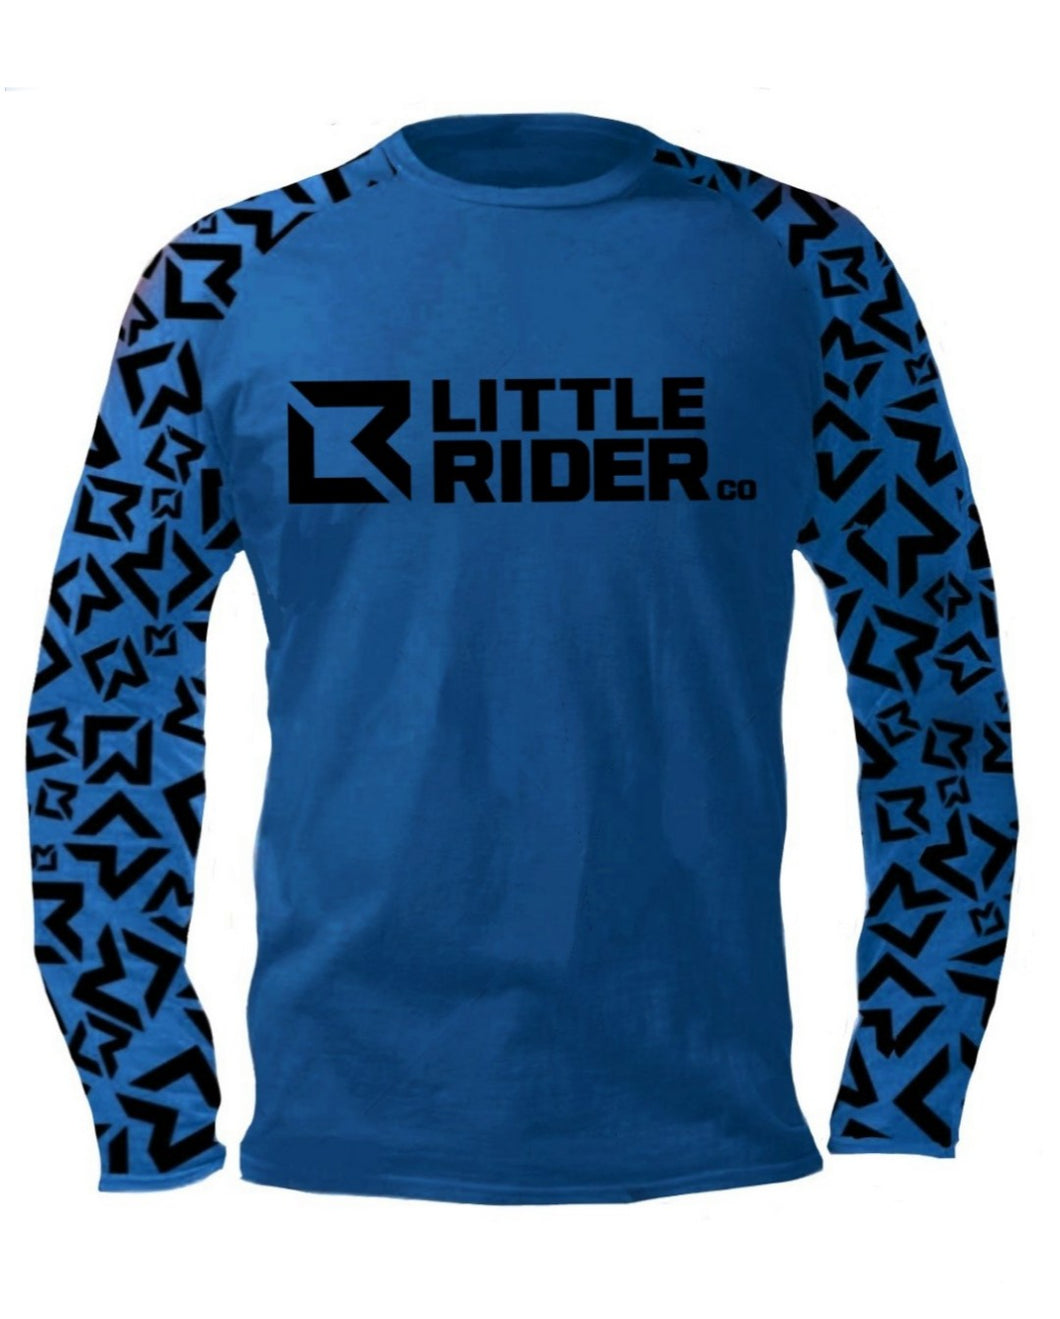 Little Rider Co Jersey - Dark Blue (END OF LINE) - RRP £25